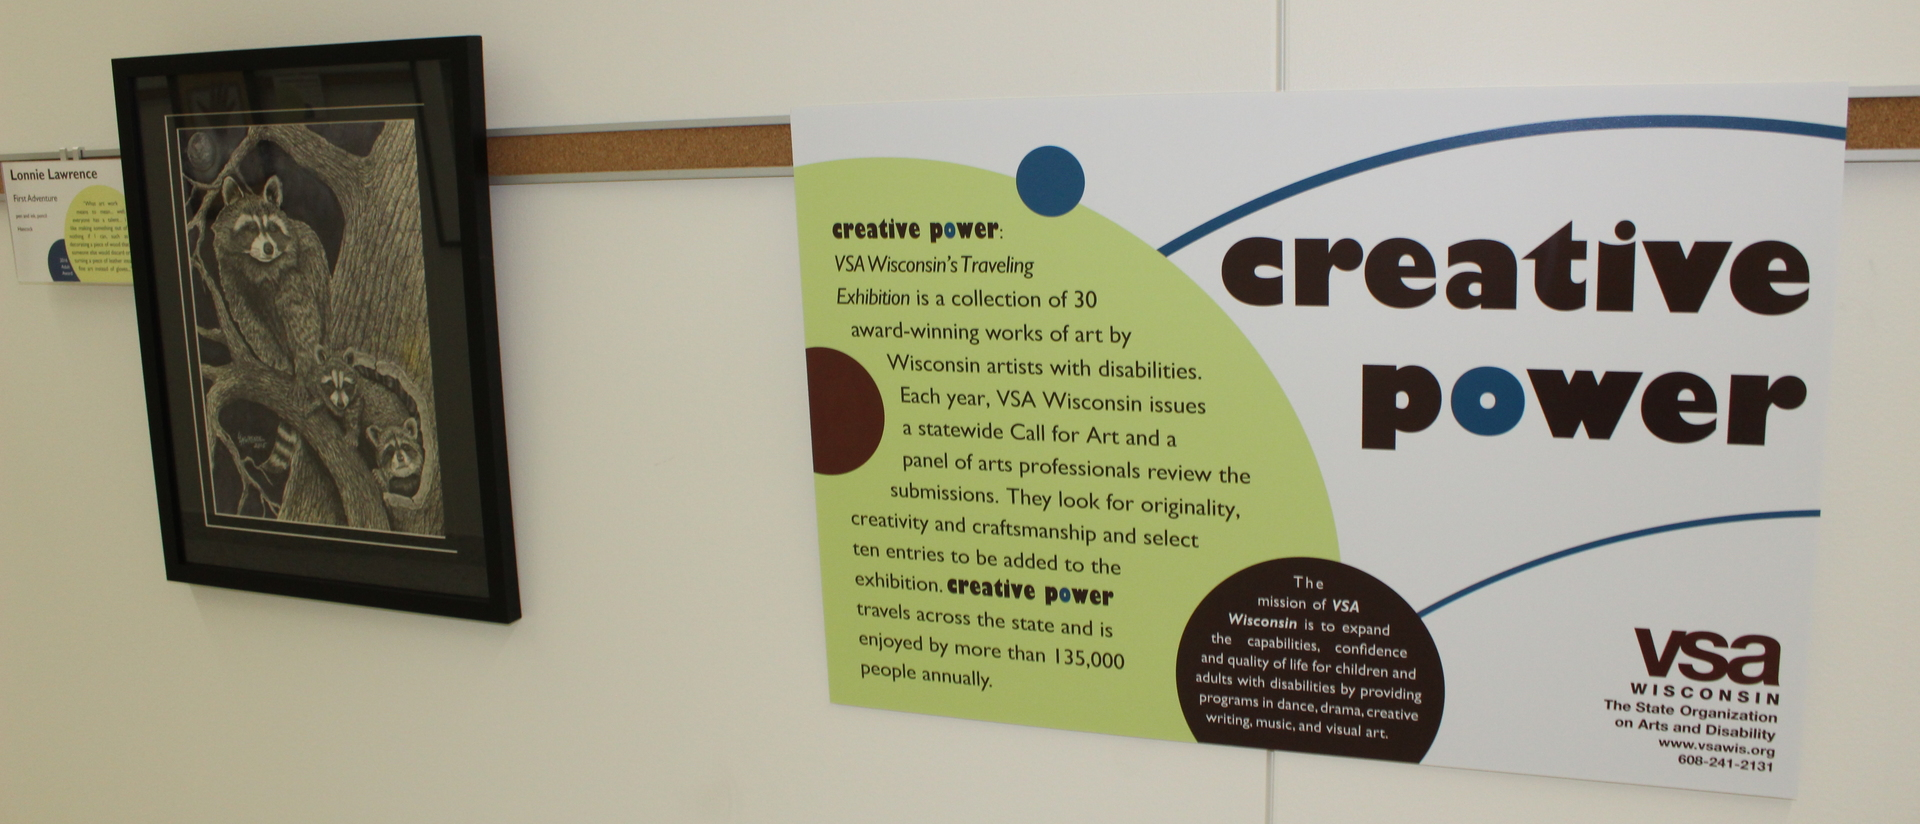 Creative Power: VSA Wisconsin's Traveling Exhibition